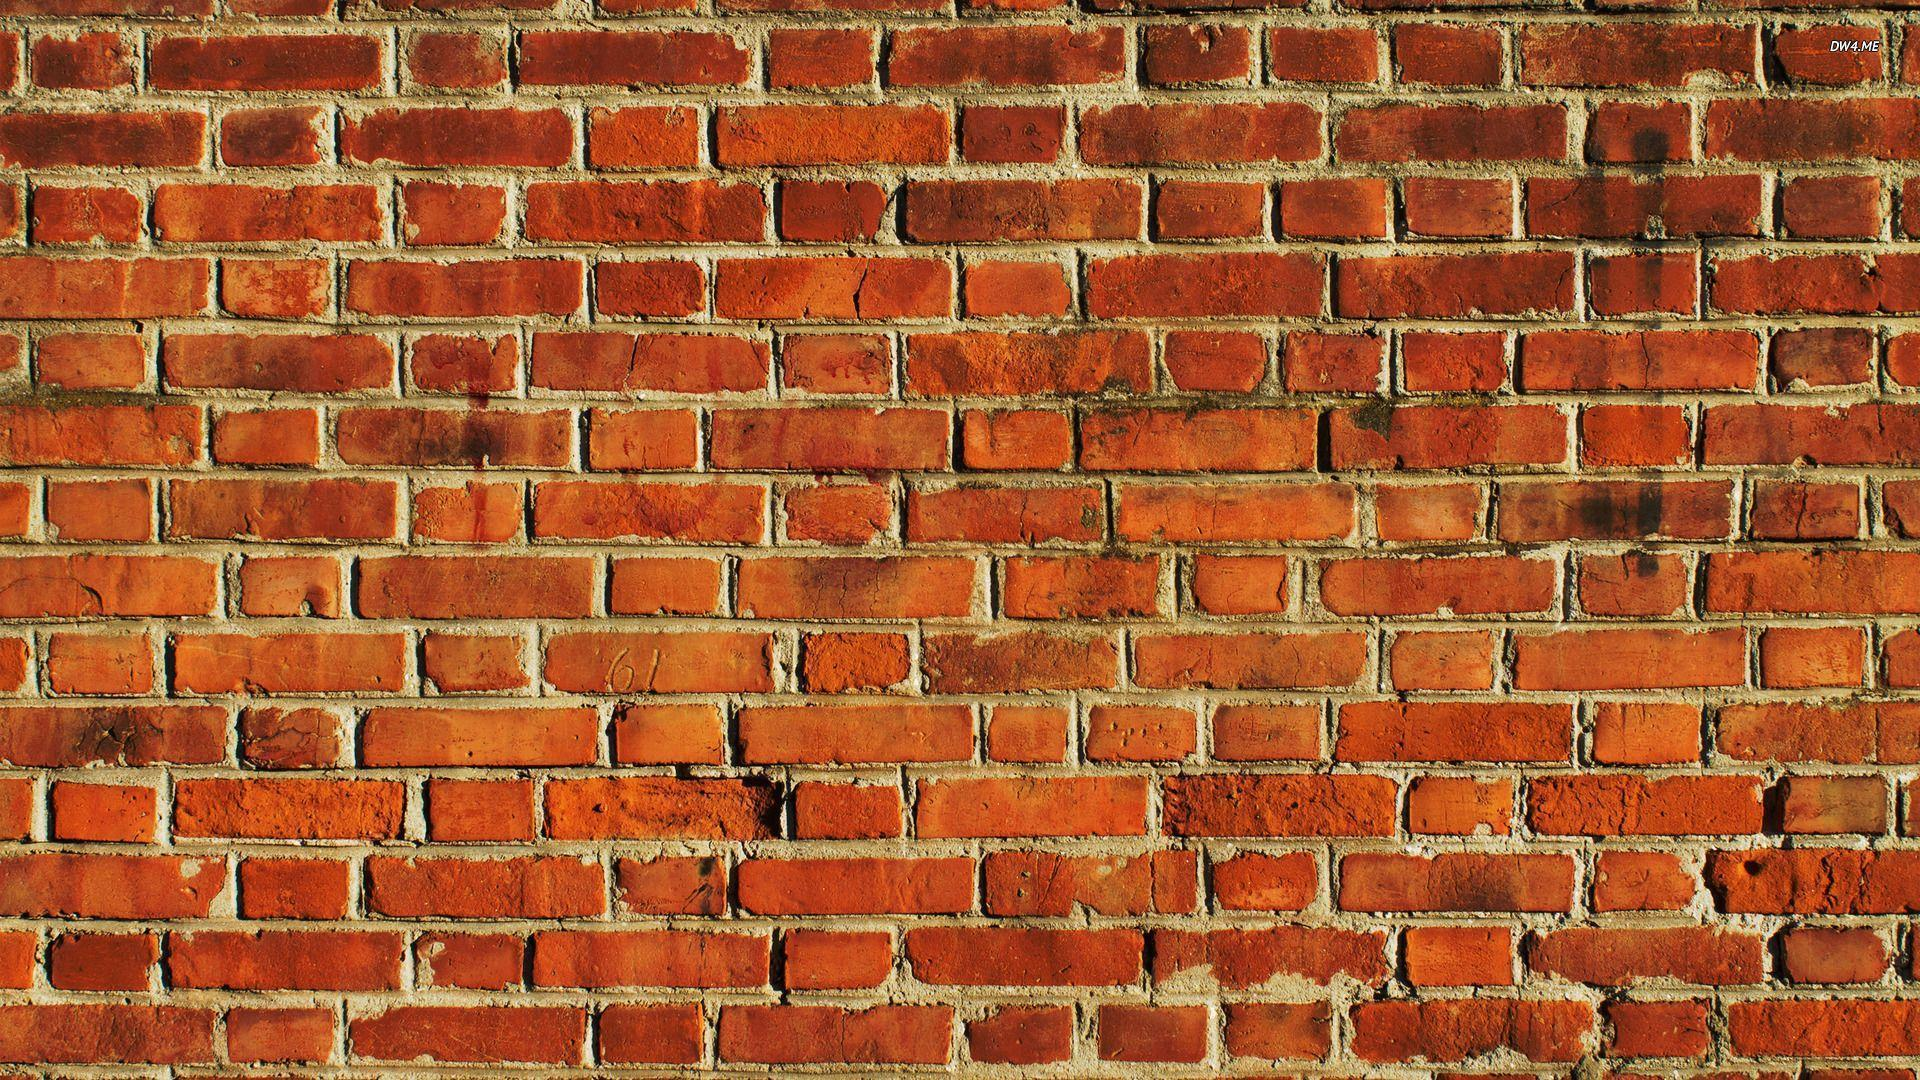 brick background images hd